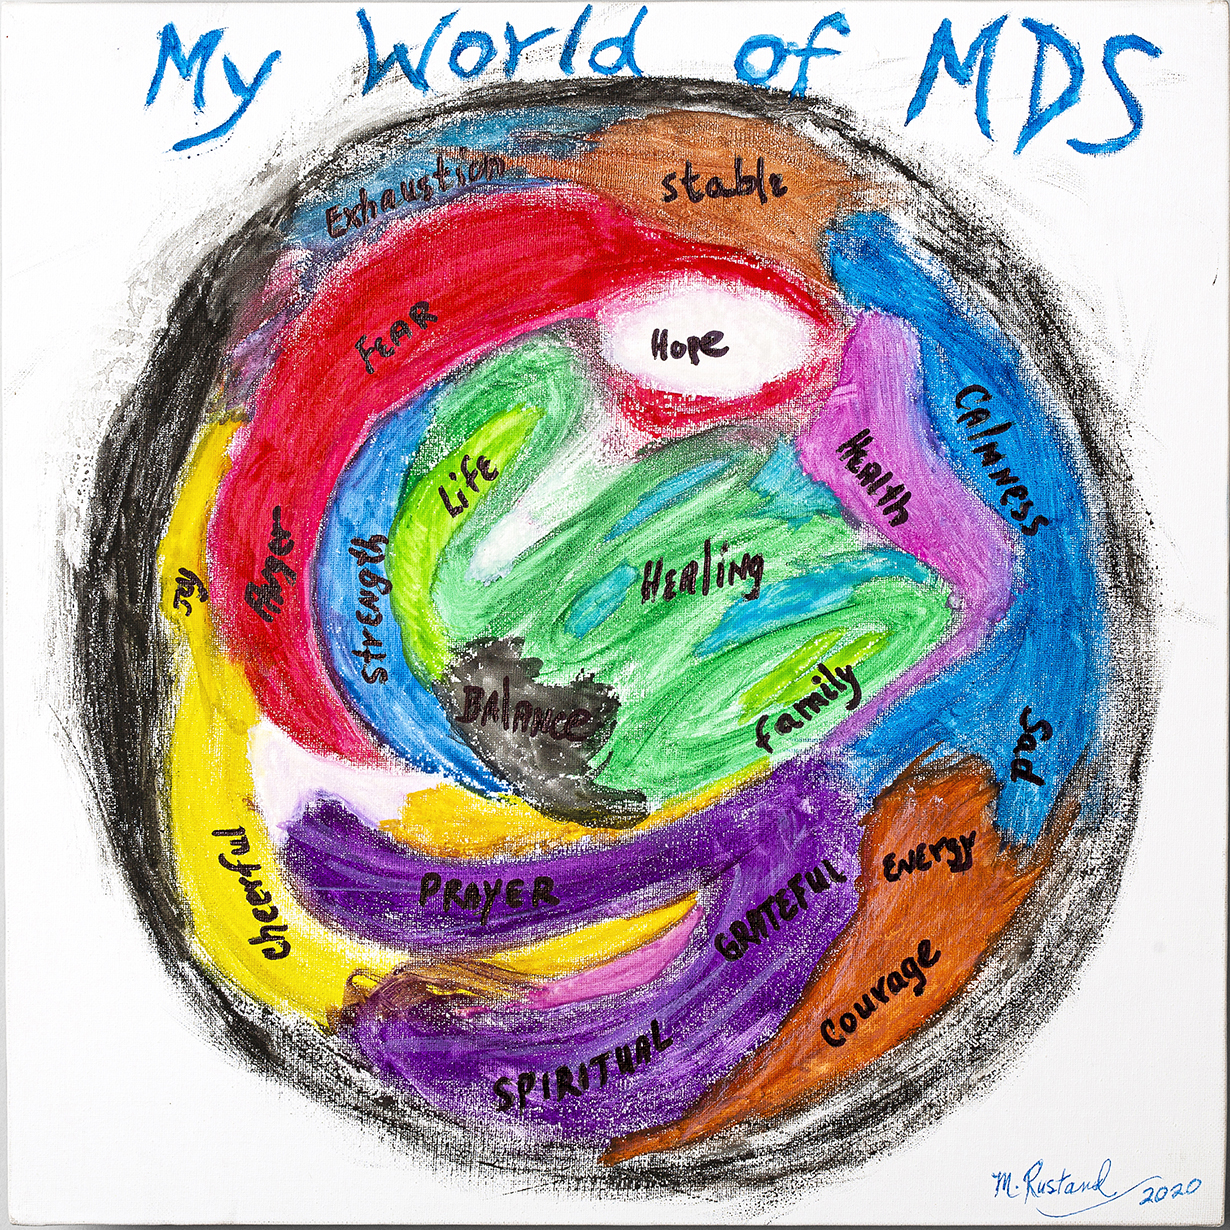 MARILYN RUSTAND, MY WORLD OF MDS: The many emotional feelings during my journey of MDS.